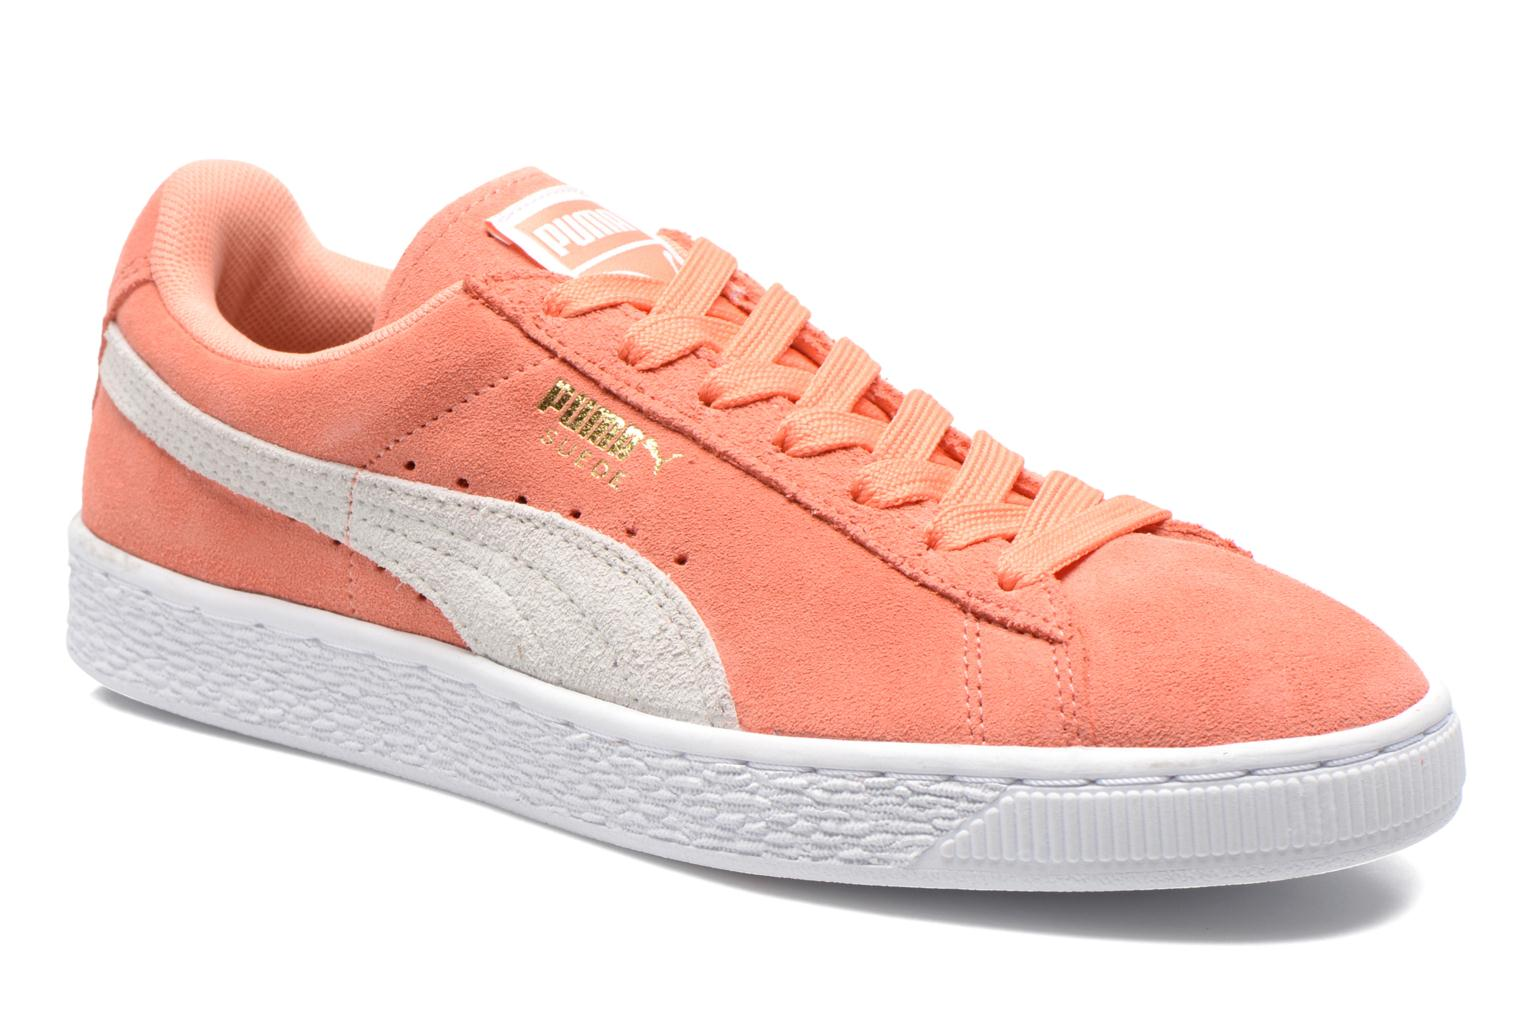 puma-suede-damen-orange-355462-33-orange-sneakers-damen